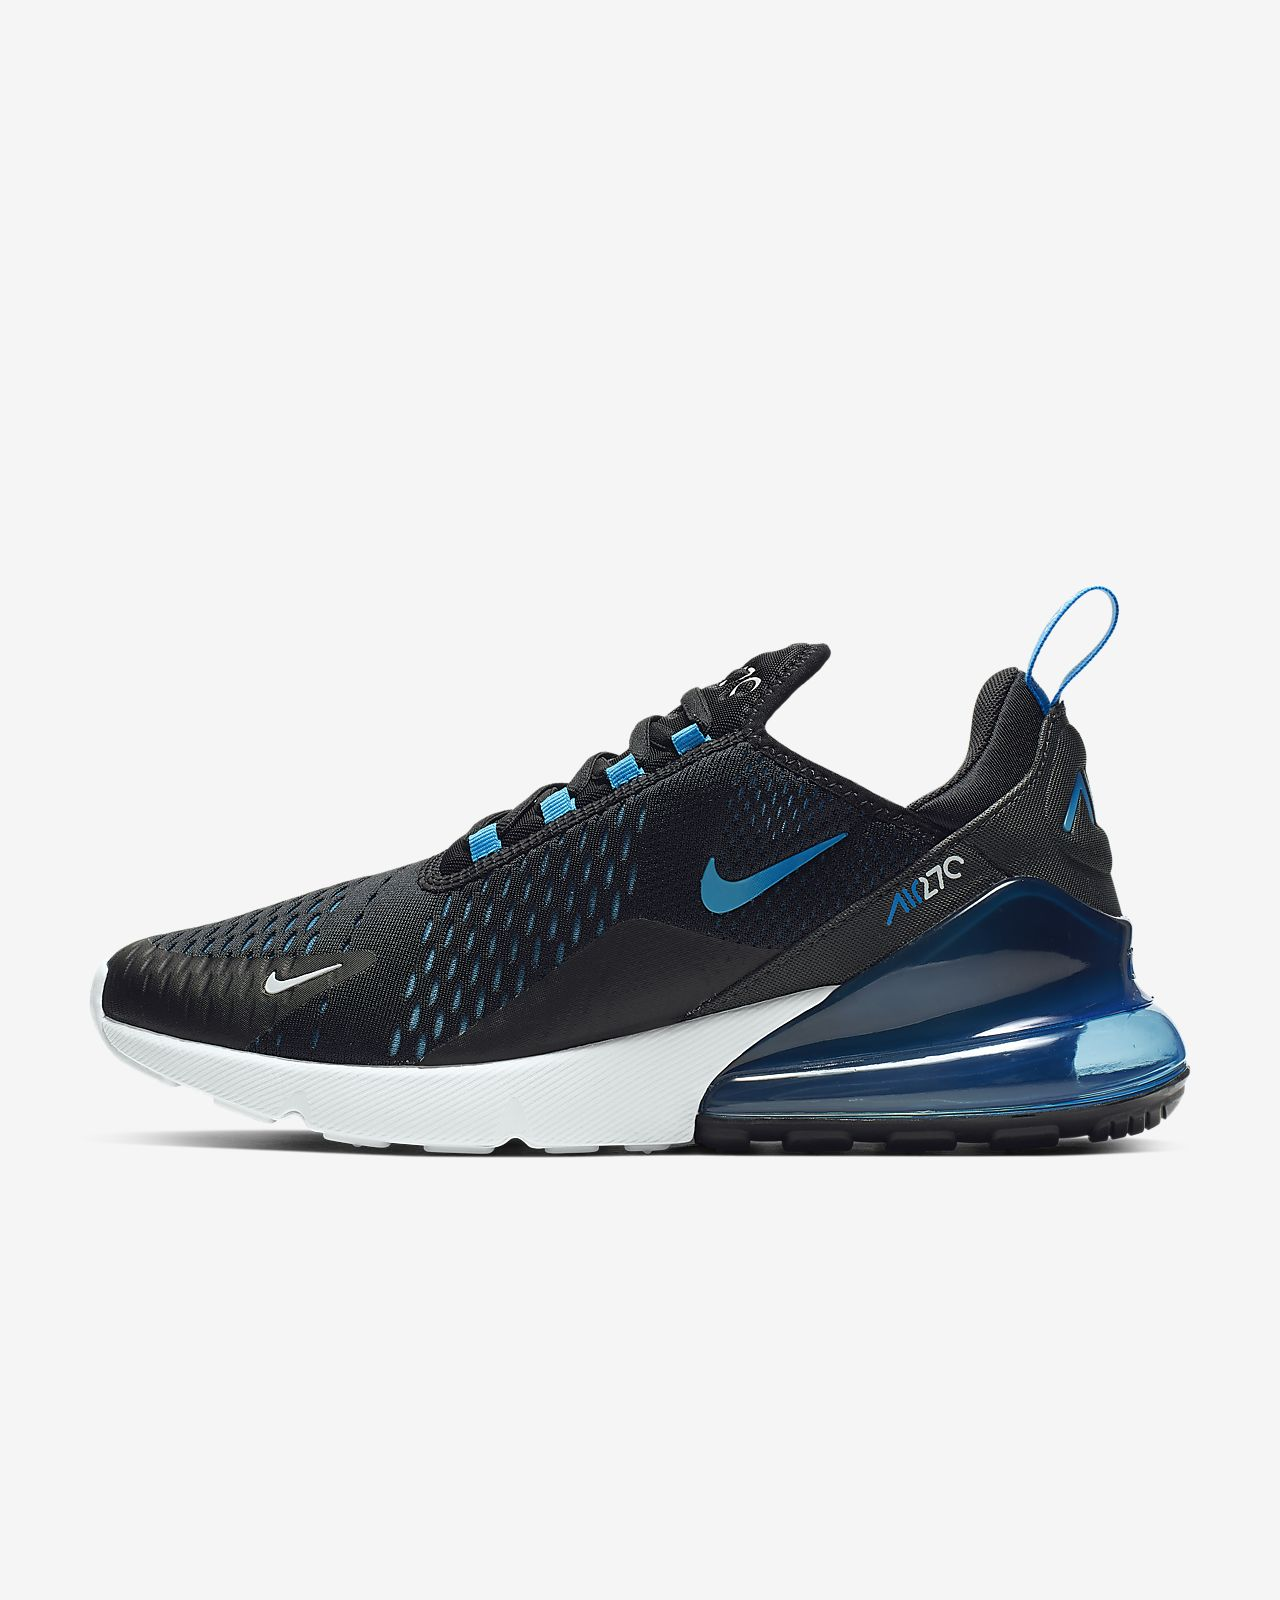 meet 926cc 1ffd3 Men s Shoe. Nike Air Max 270